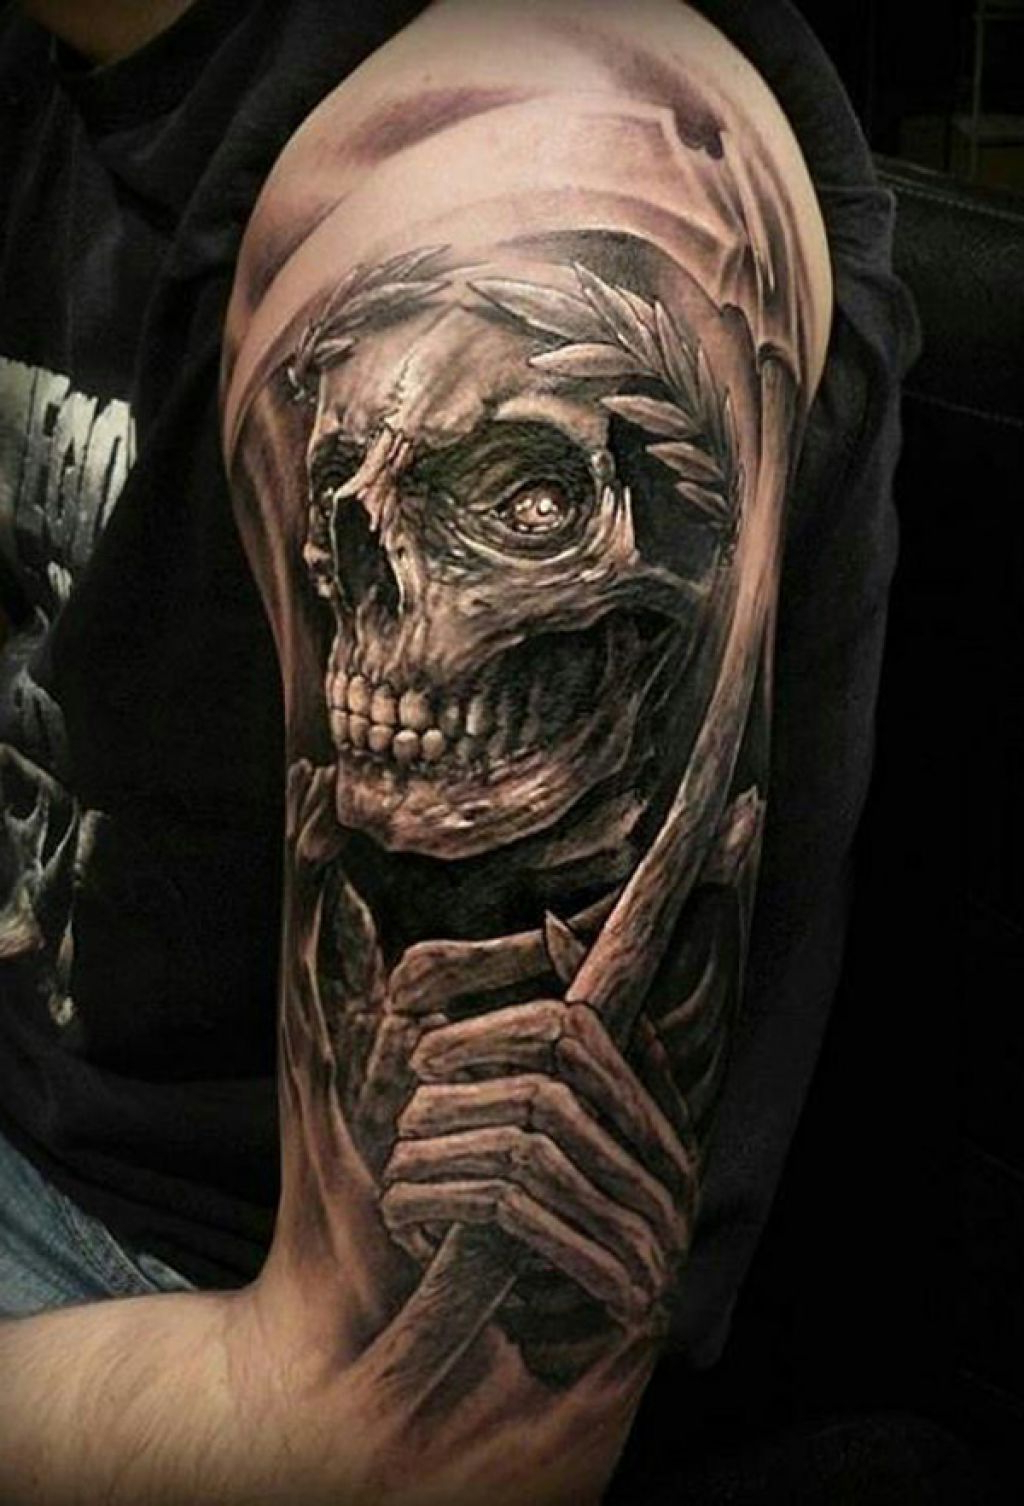 eedfb4c75 Black And Grey Skull Sleeve Tattoos Black And Grey Full Sleeve Tattoo Ideas  Archives – Tattoo Ink